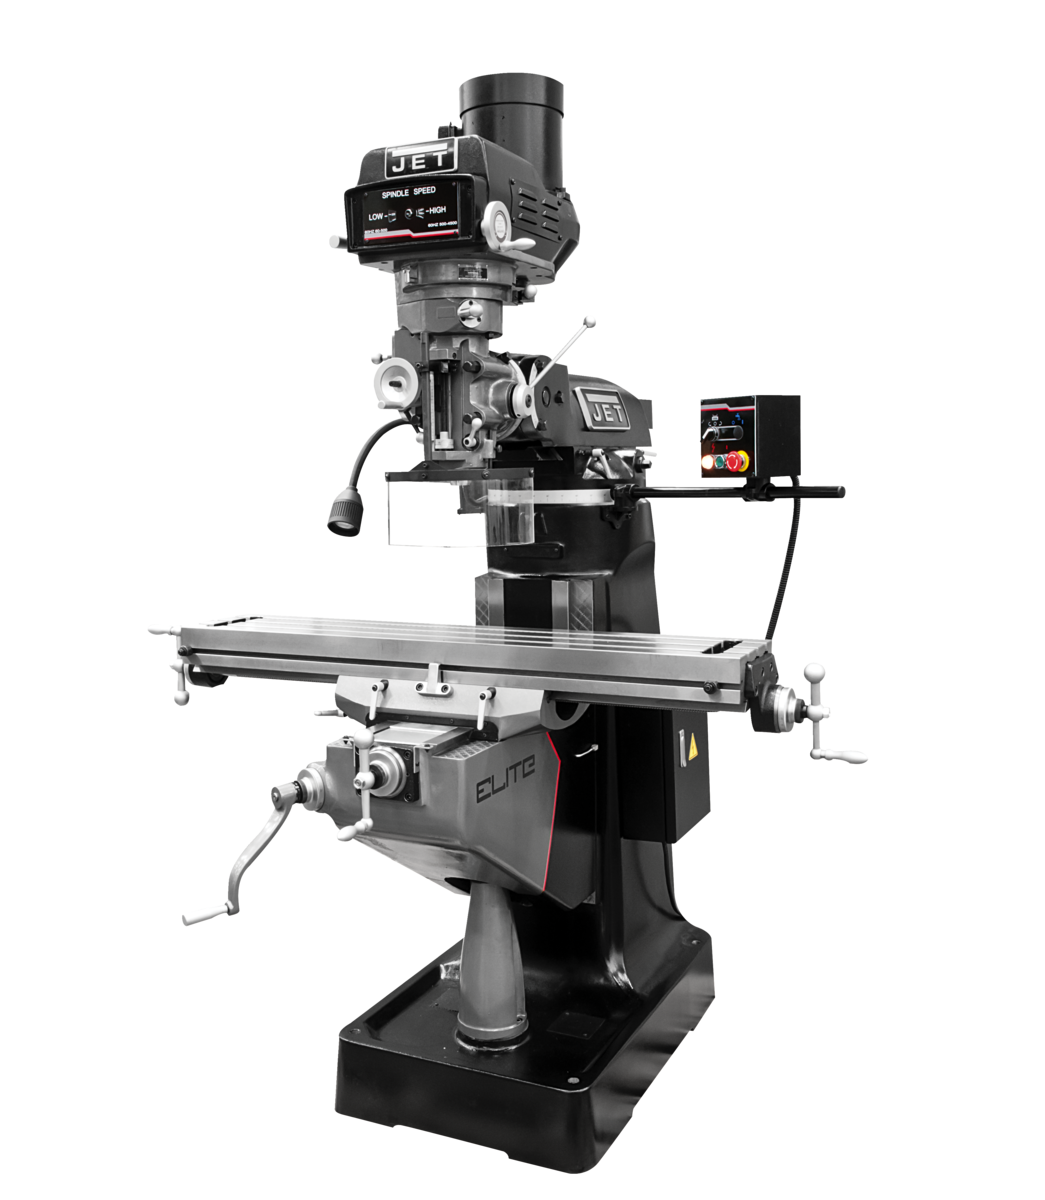 ETM-949 Mill with 3-Axis ACU-RITE 203  (Knee) DRO and X, Y-Axis JET Powerfeeds